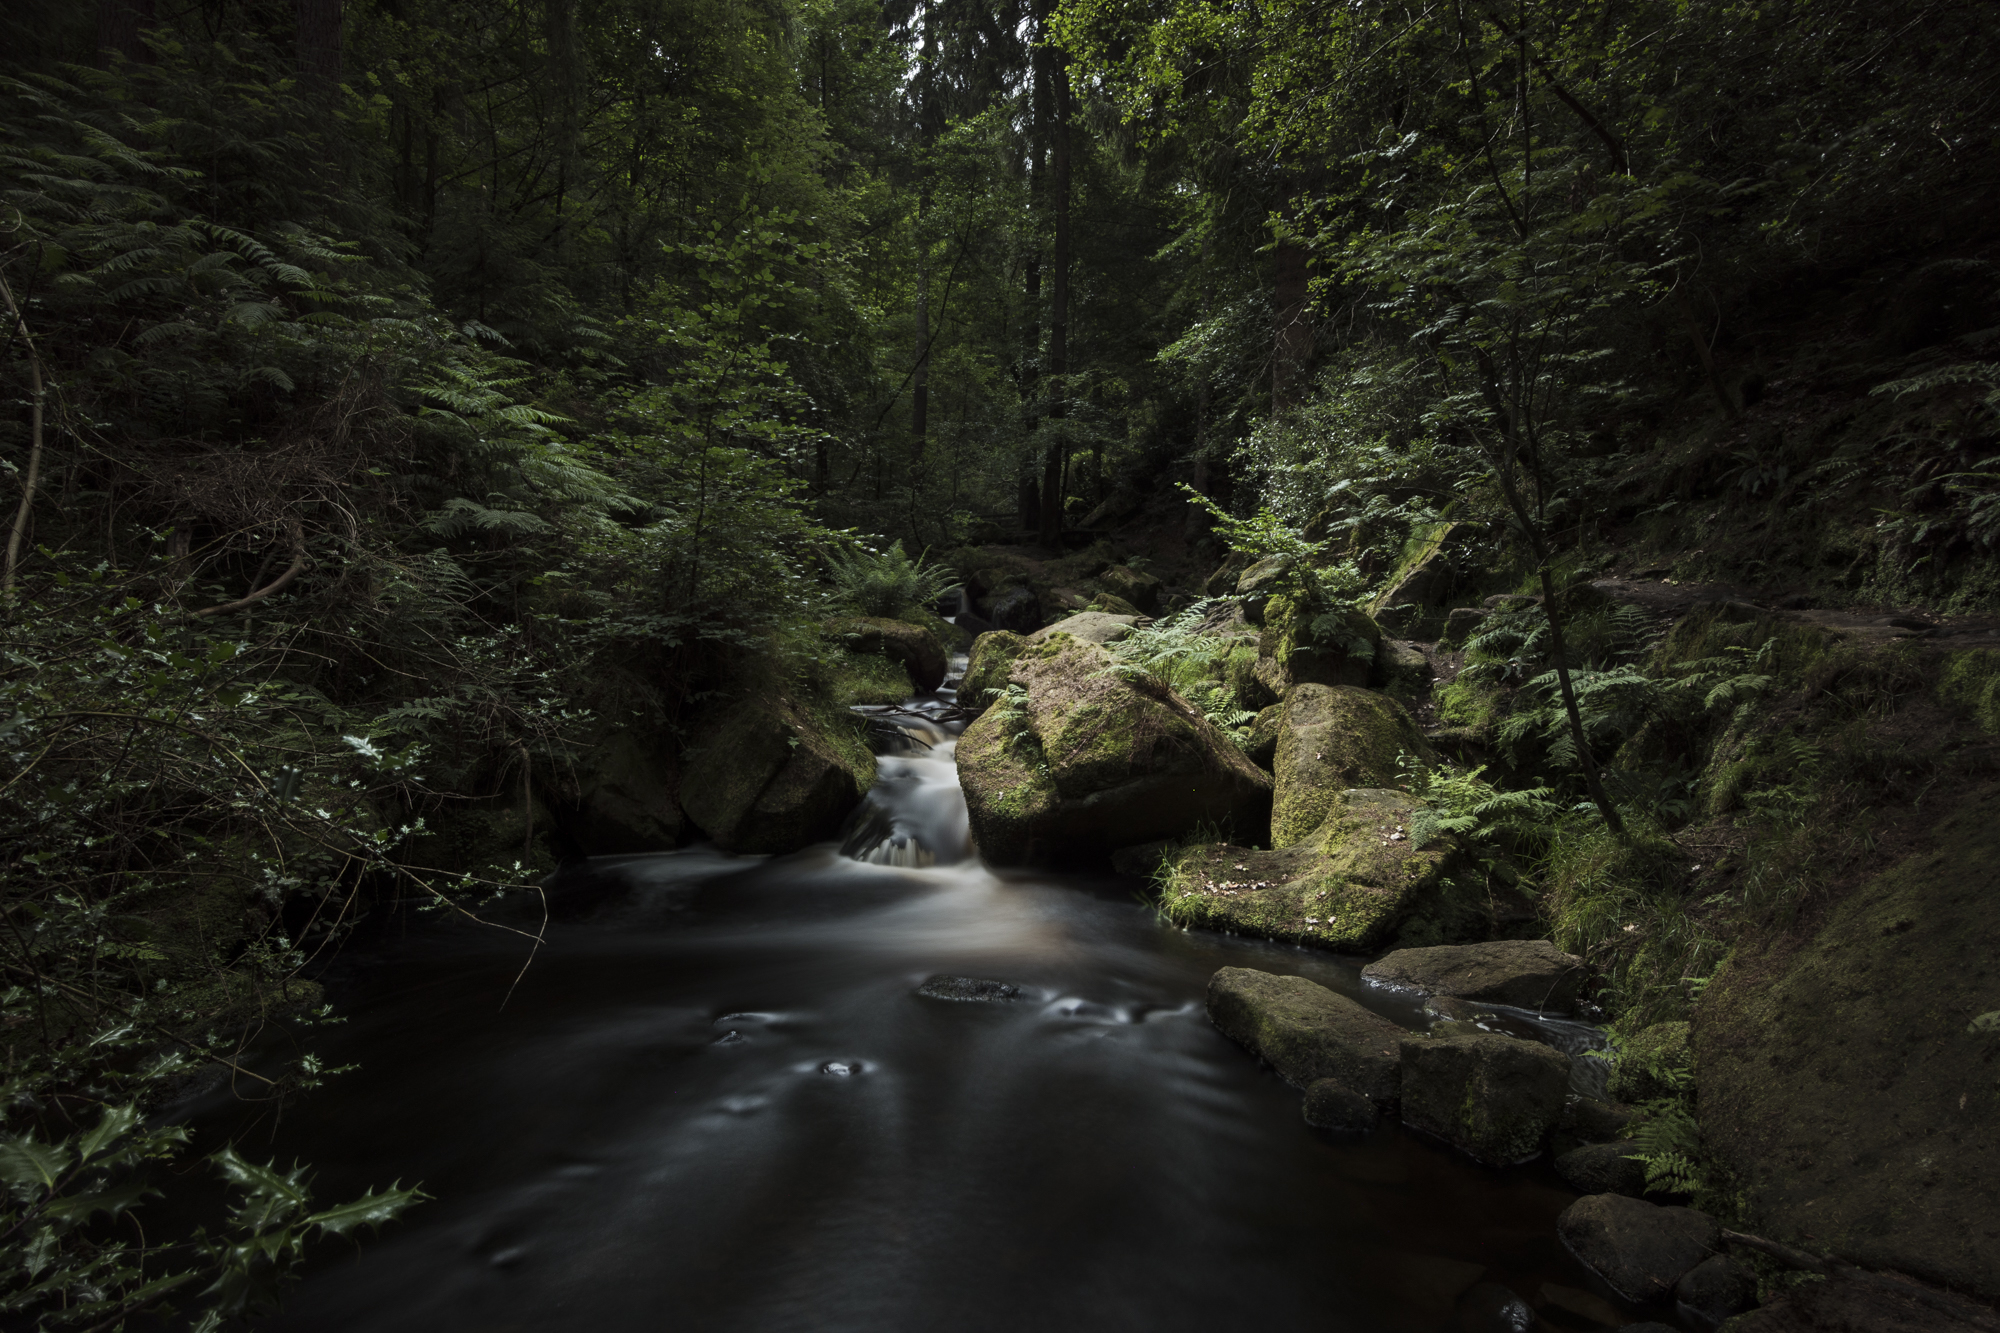 Wyming Brook, Peak District. Unedited raw file from the D7500, with the Nikon 12-24mm f/4 lens and a Tiffen Advantix 10-stop ND filter